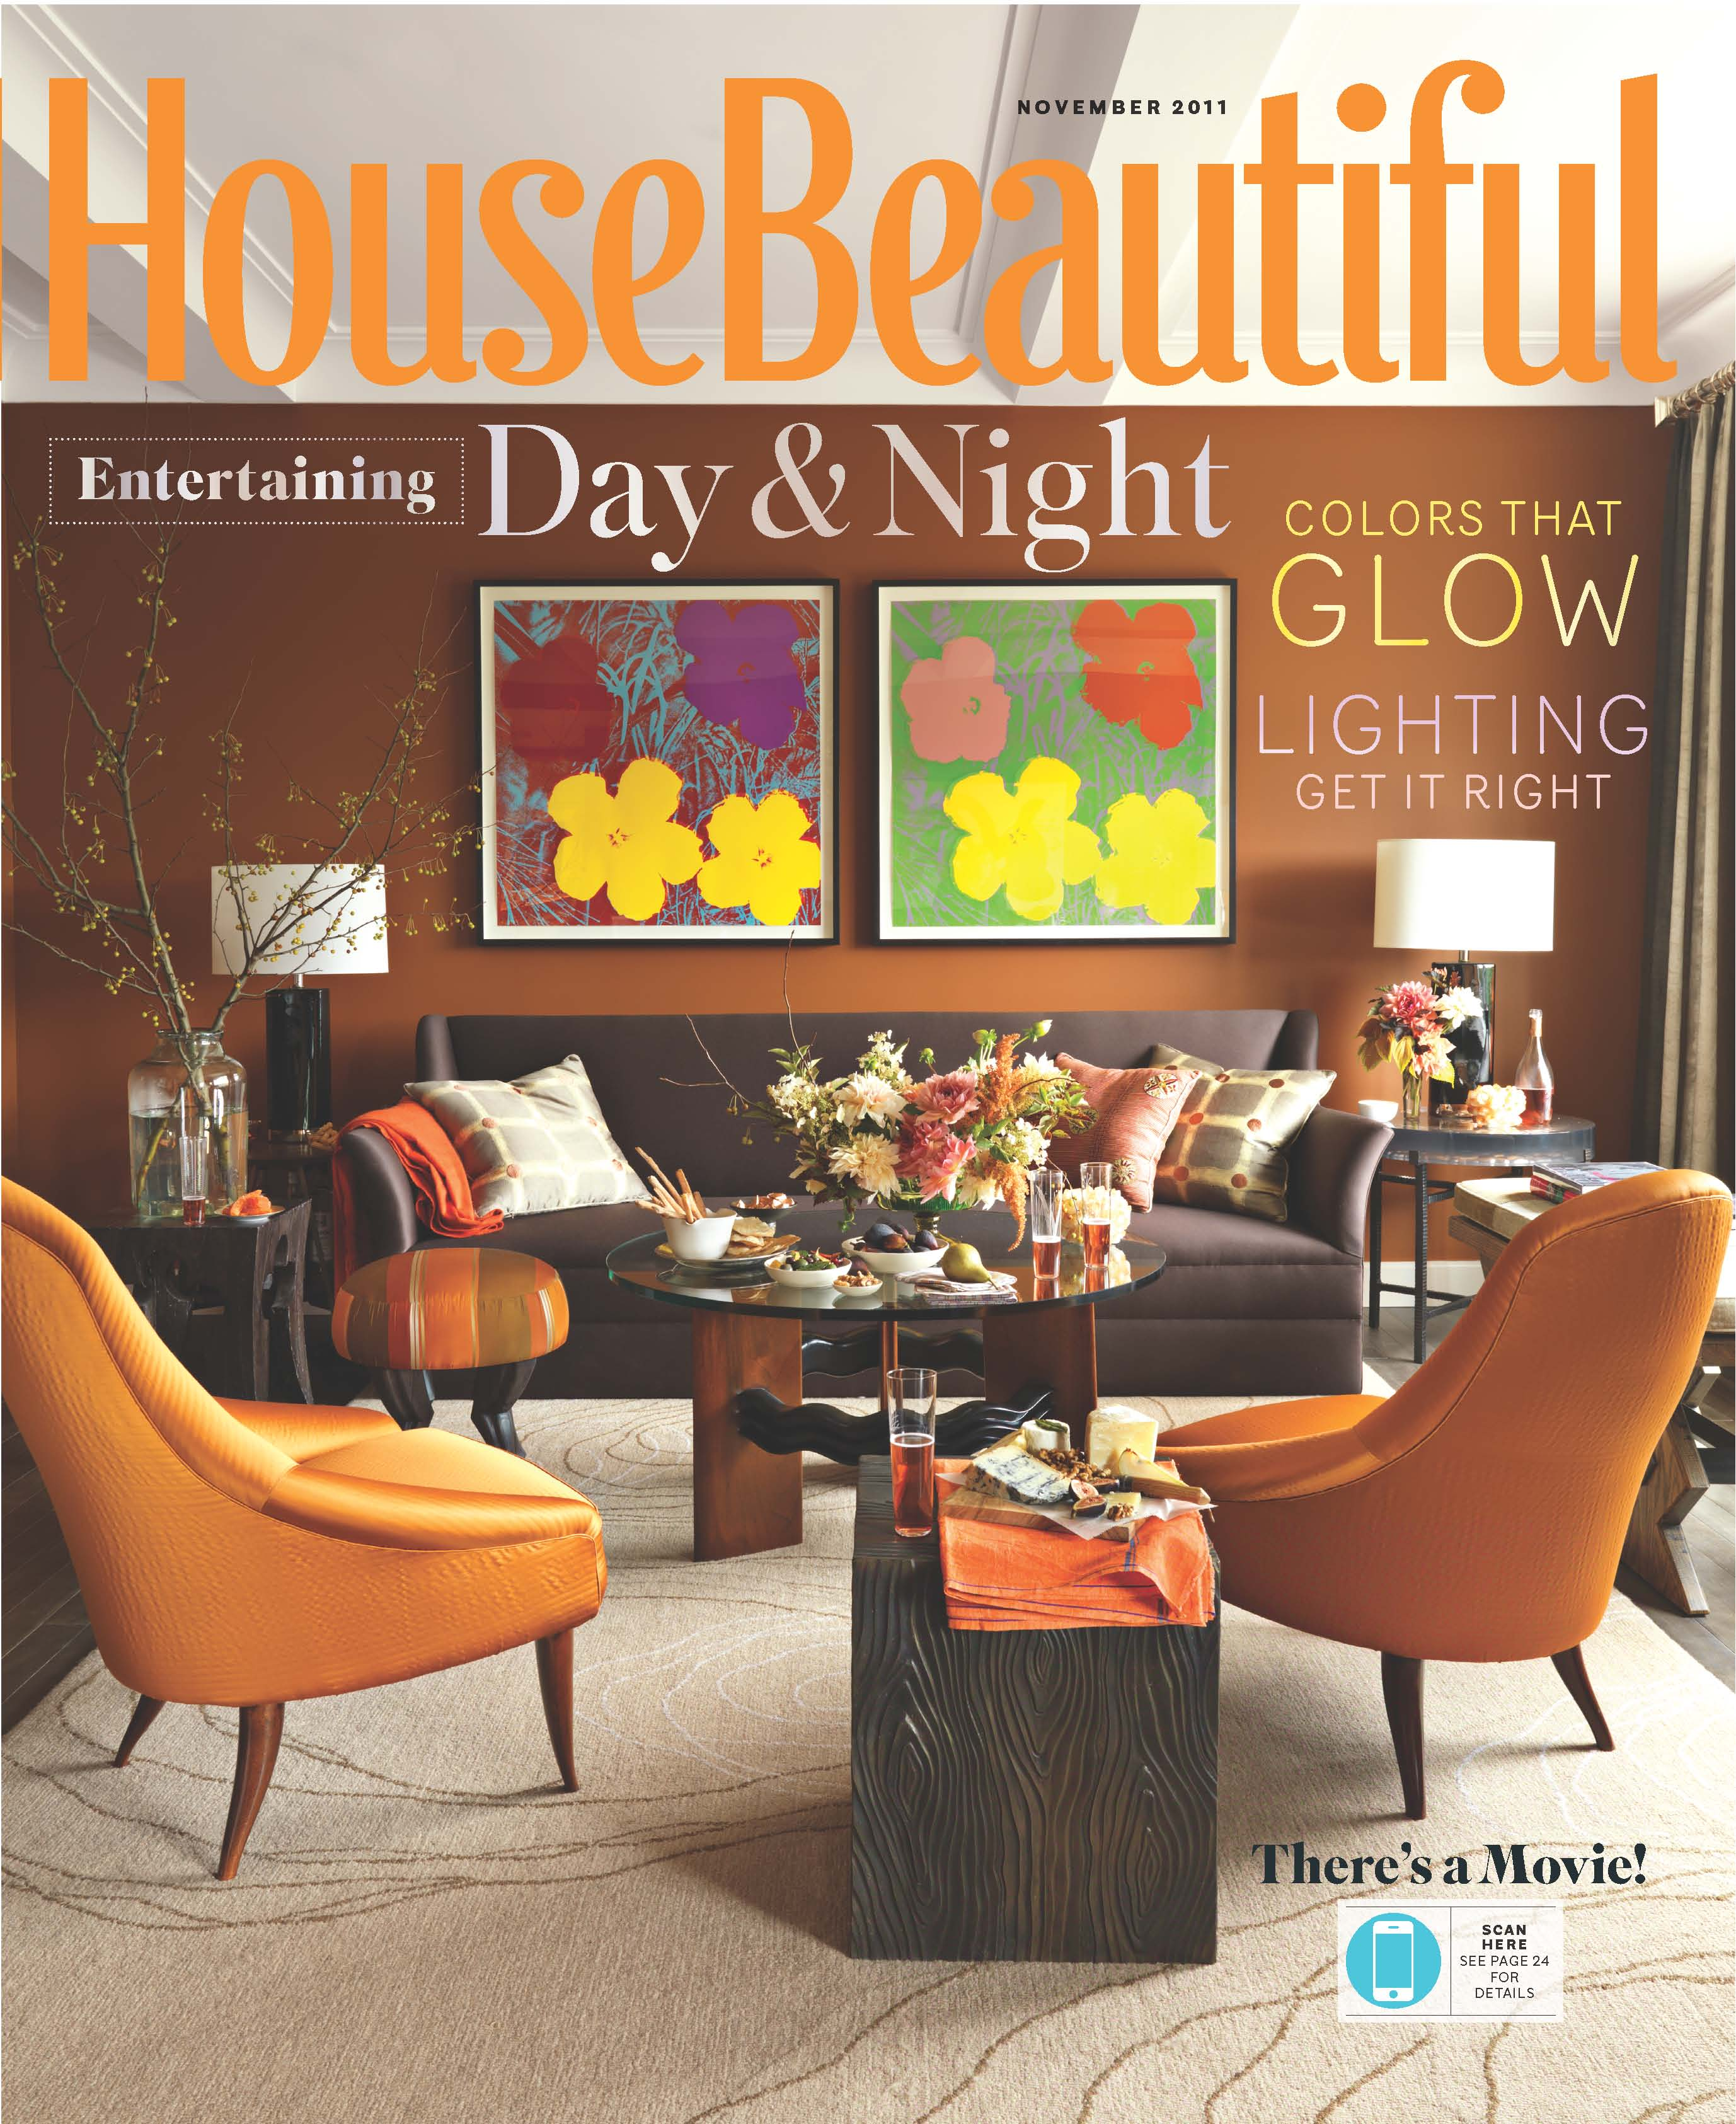 New digital features enhance House Beautiful's print mag